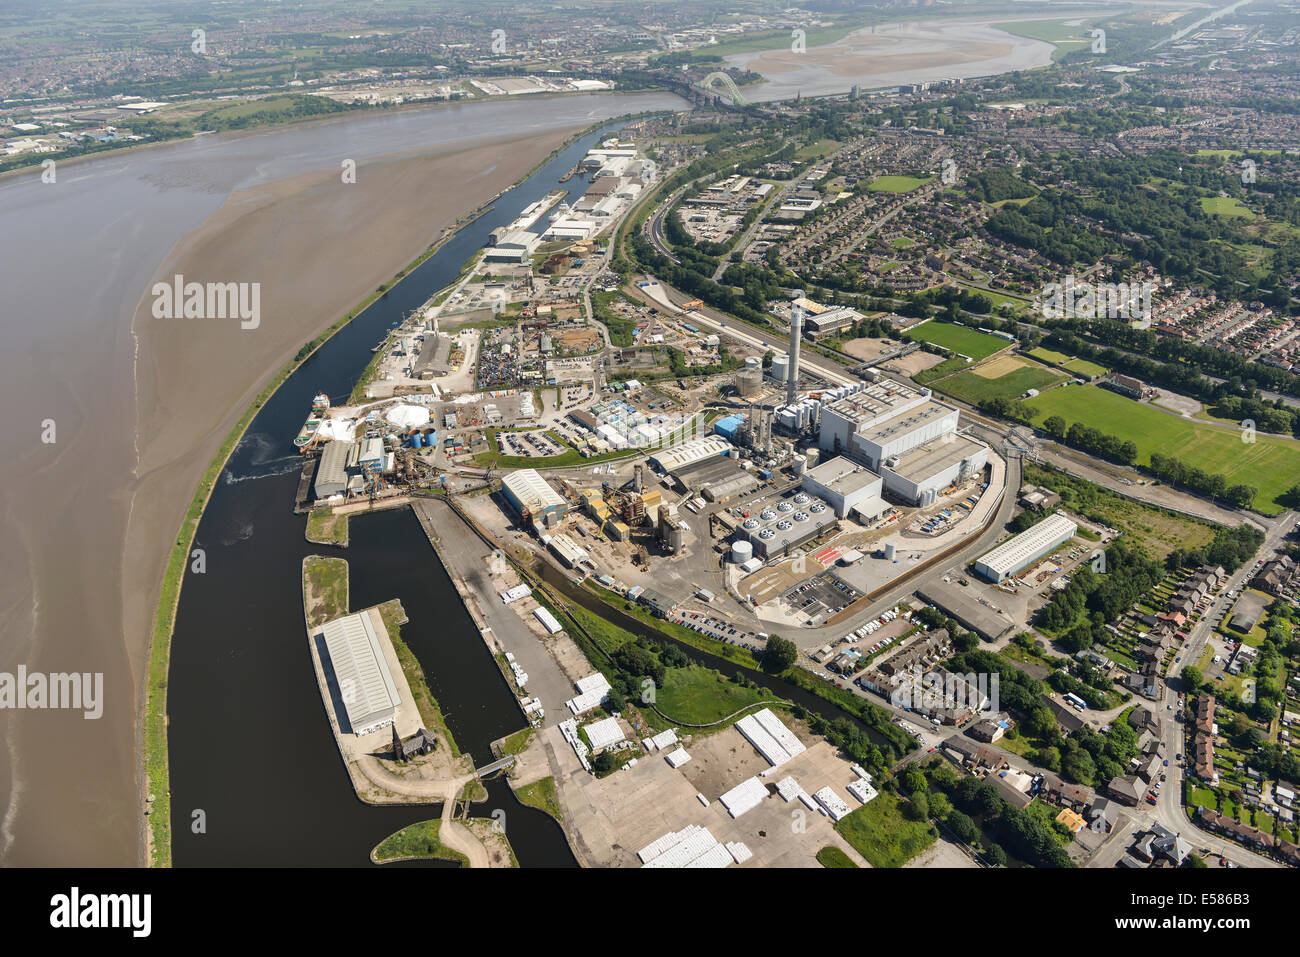 An aerial view showing Runcorn and Widnes, towns in Cheshire UK either side of the River Mersey. - Stock Image